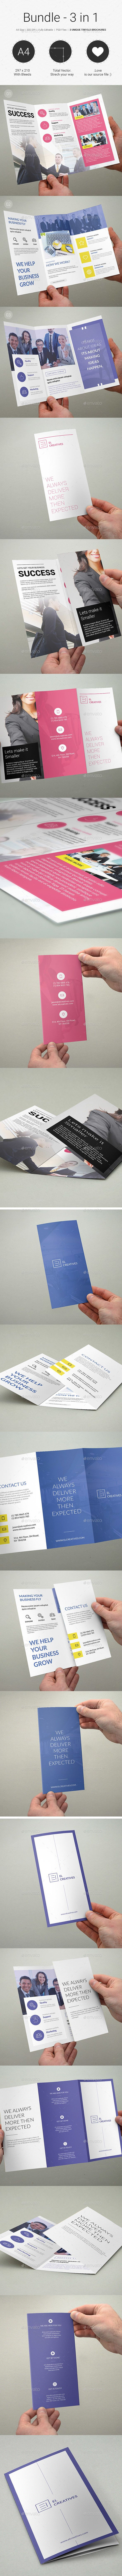 Bundle - Corporate Trifold Brochures Template PSD. Download here: http://graphicriver.net/item/bundle-corporate-trifold-brochures-25/15860137?ref=ksioks